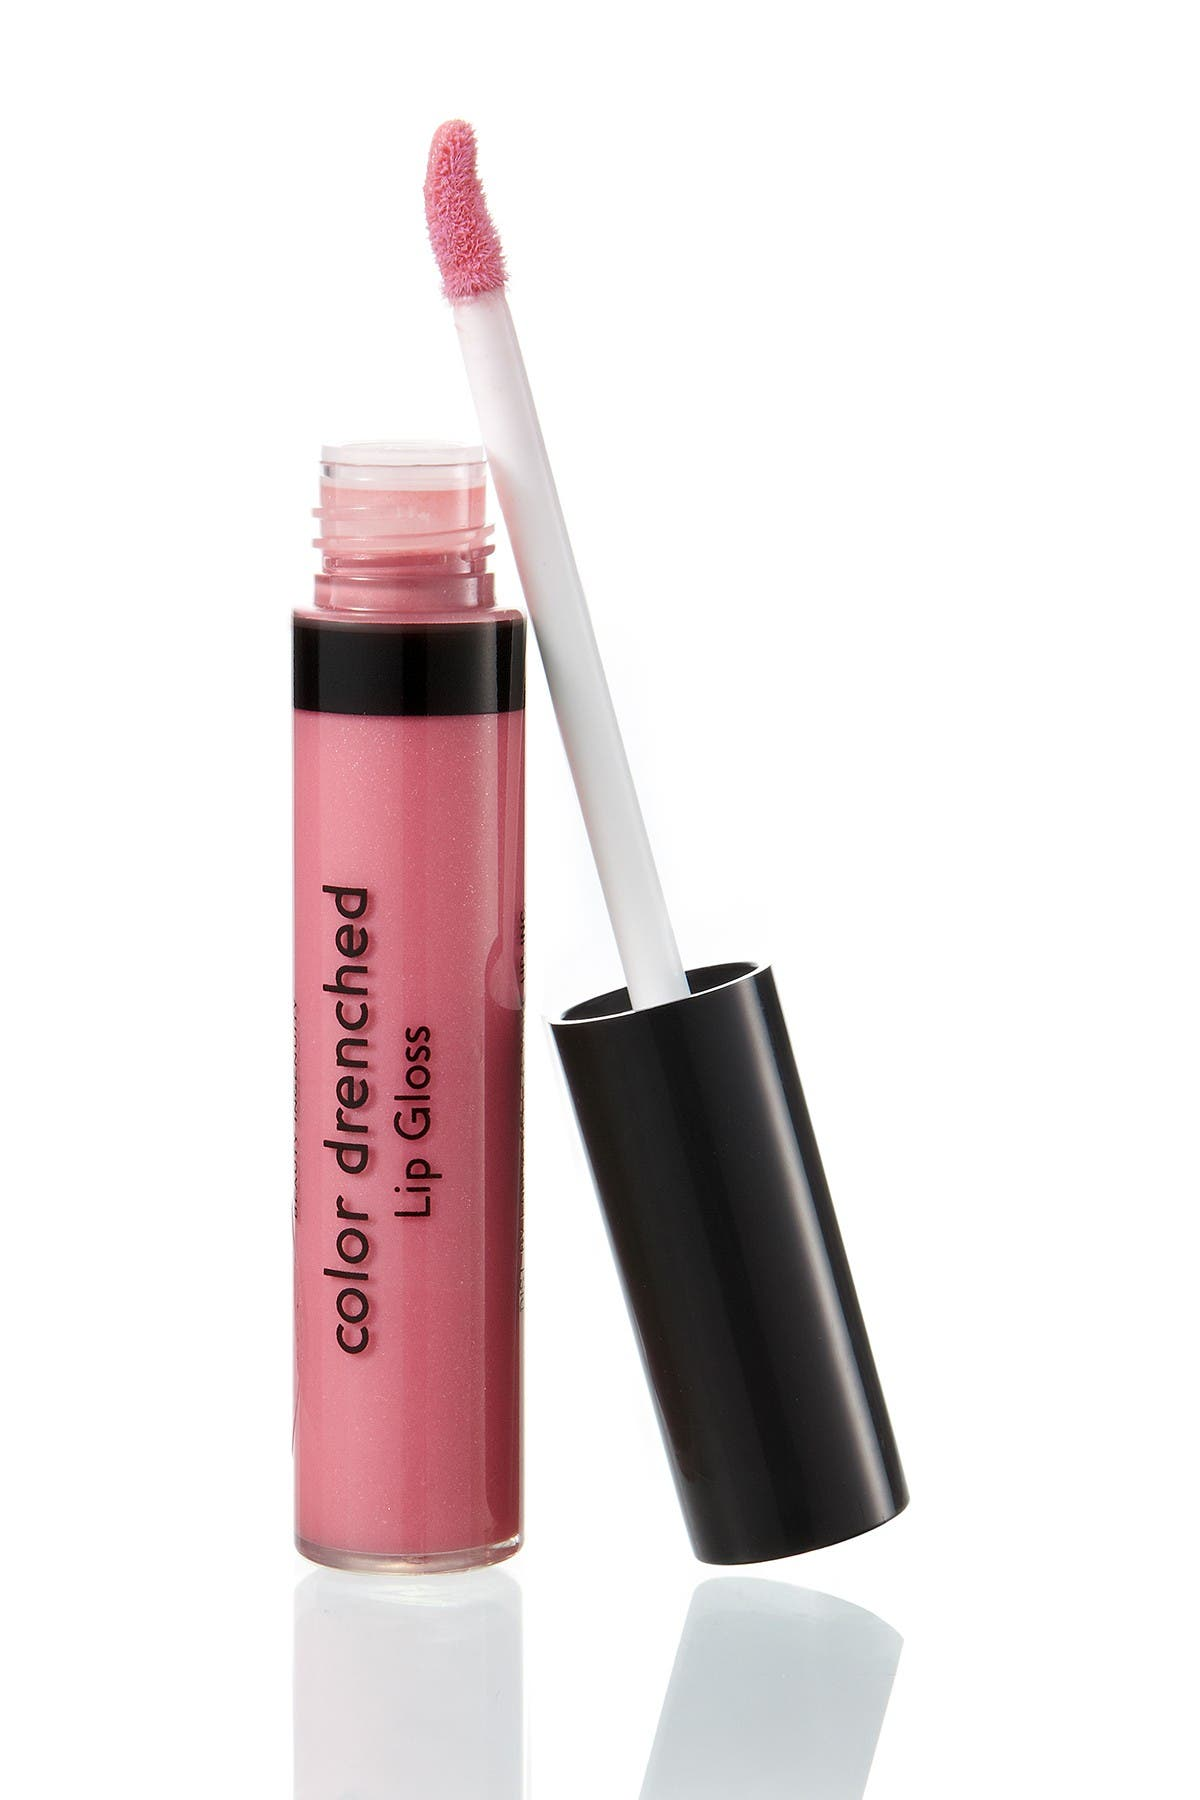 Image of Laura Geller New York Color Drenched Lip Gloss - Poppin Pink